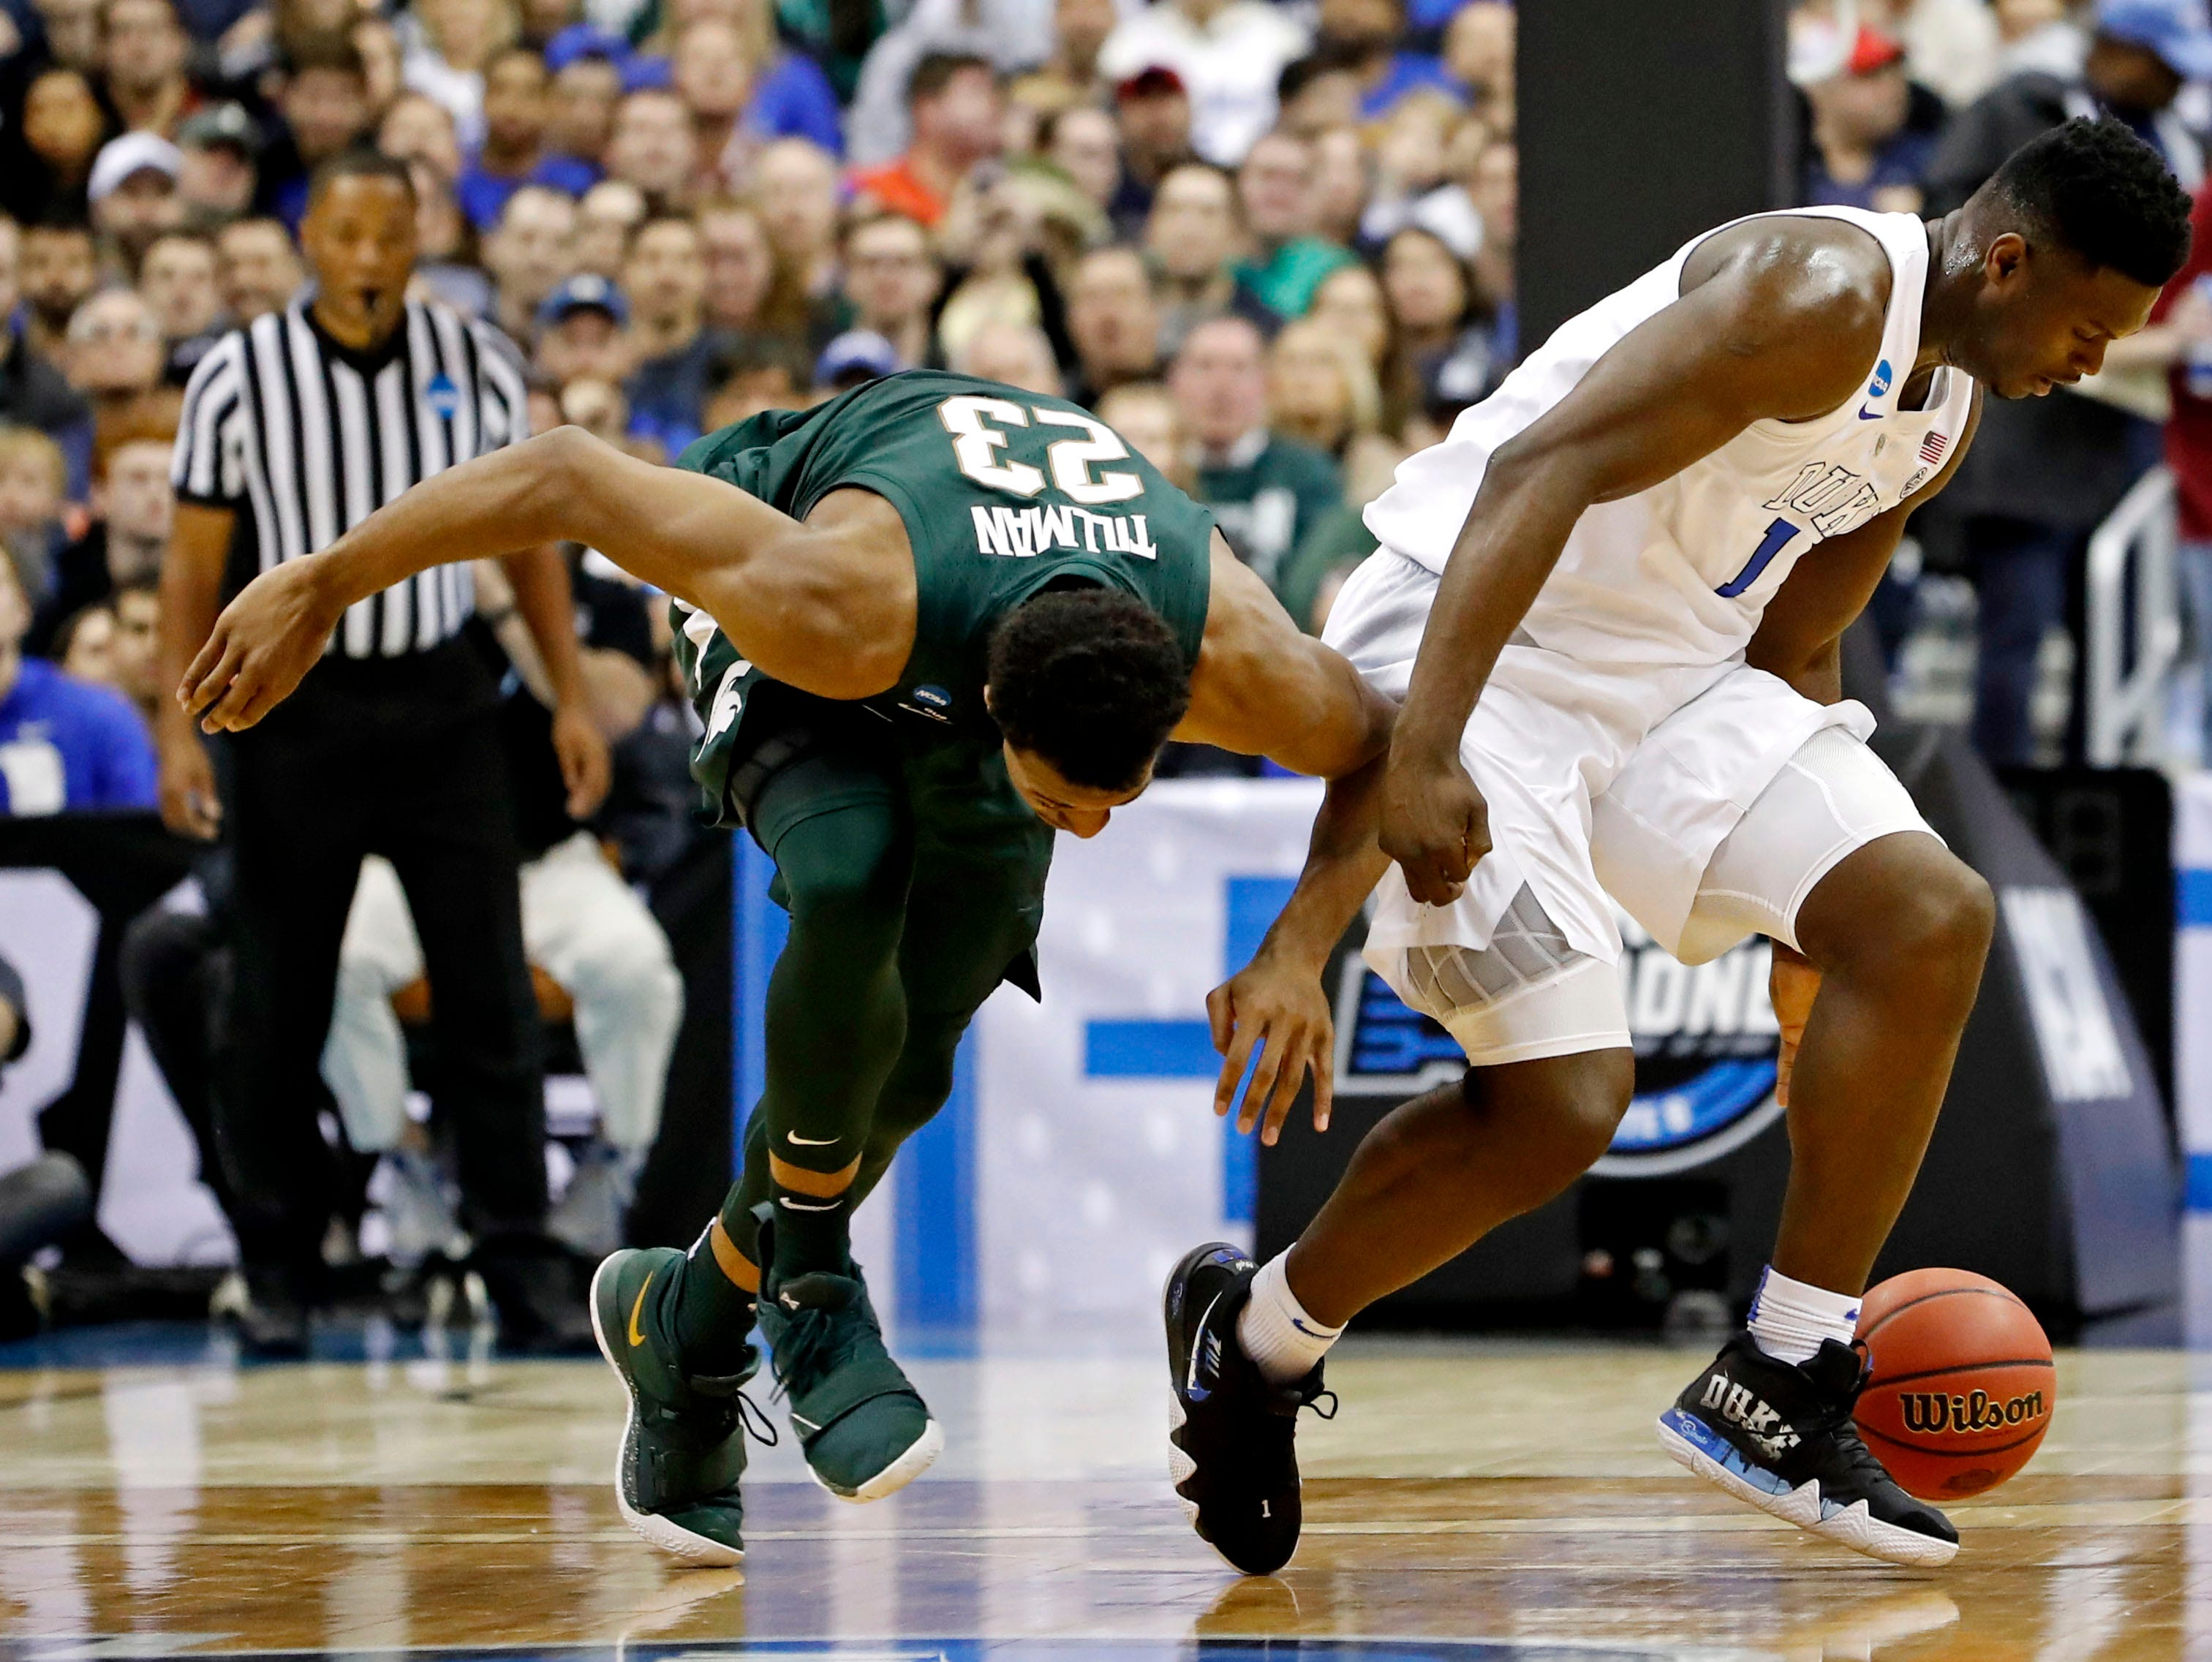 Mar 31, 2019; Washington, DC, USA; Duke Blue Devils forward Zion Williamson (1) and Michigan State Spartans forward Xavier Tillman (23) for a loose ball during the first half in the championship game of the east regional of the 2019 NCAA Tournament at Capital One Arena. Mandatory Credit: Geoff Burke-USA TODAY Sports